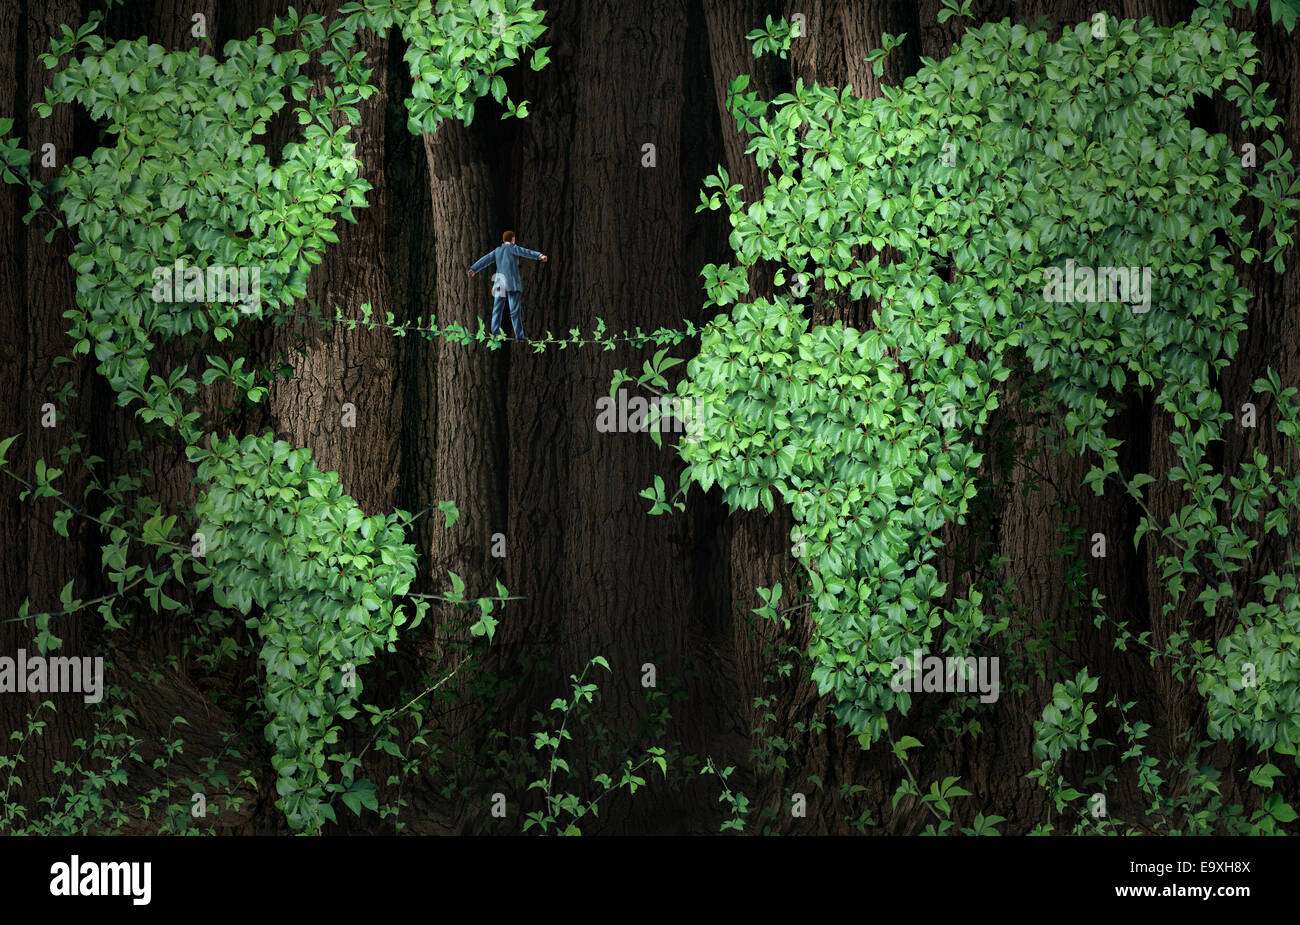 Global growth risk business concept as a businessman walking on a tightrope made from plant vines in a background - Stock Image